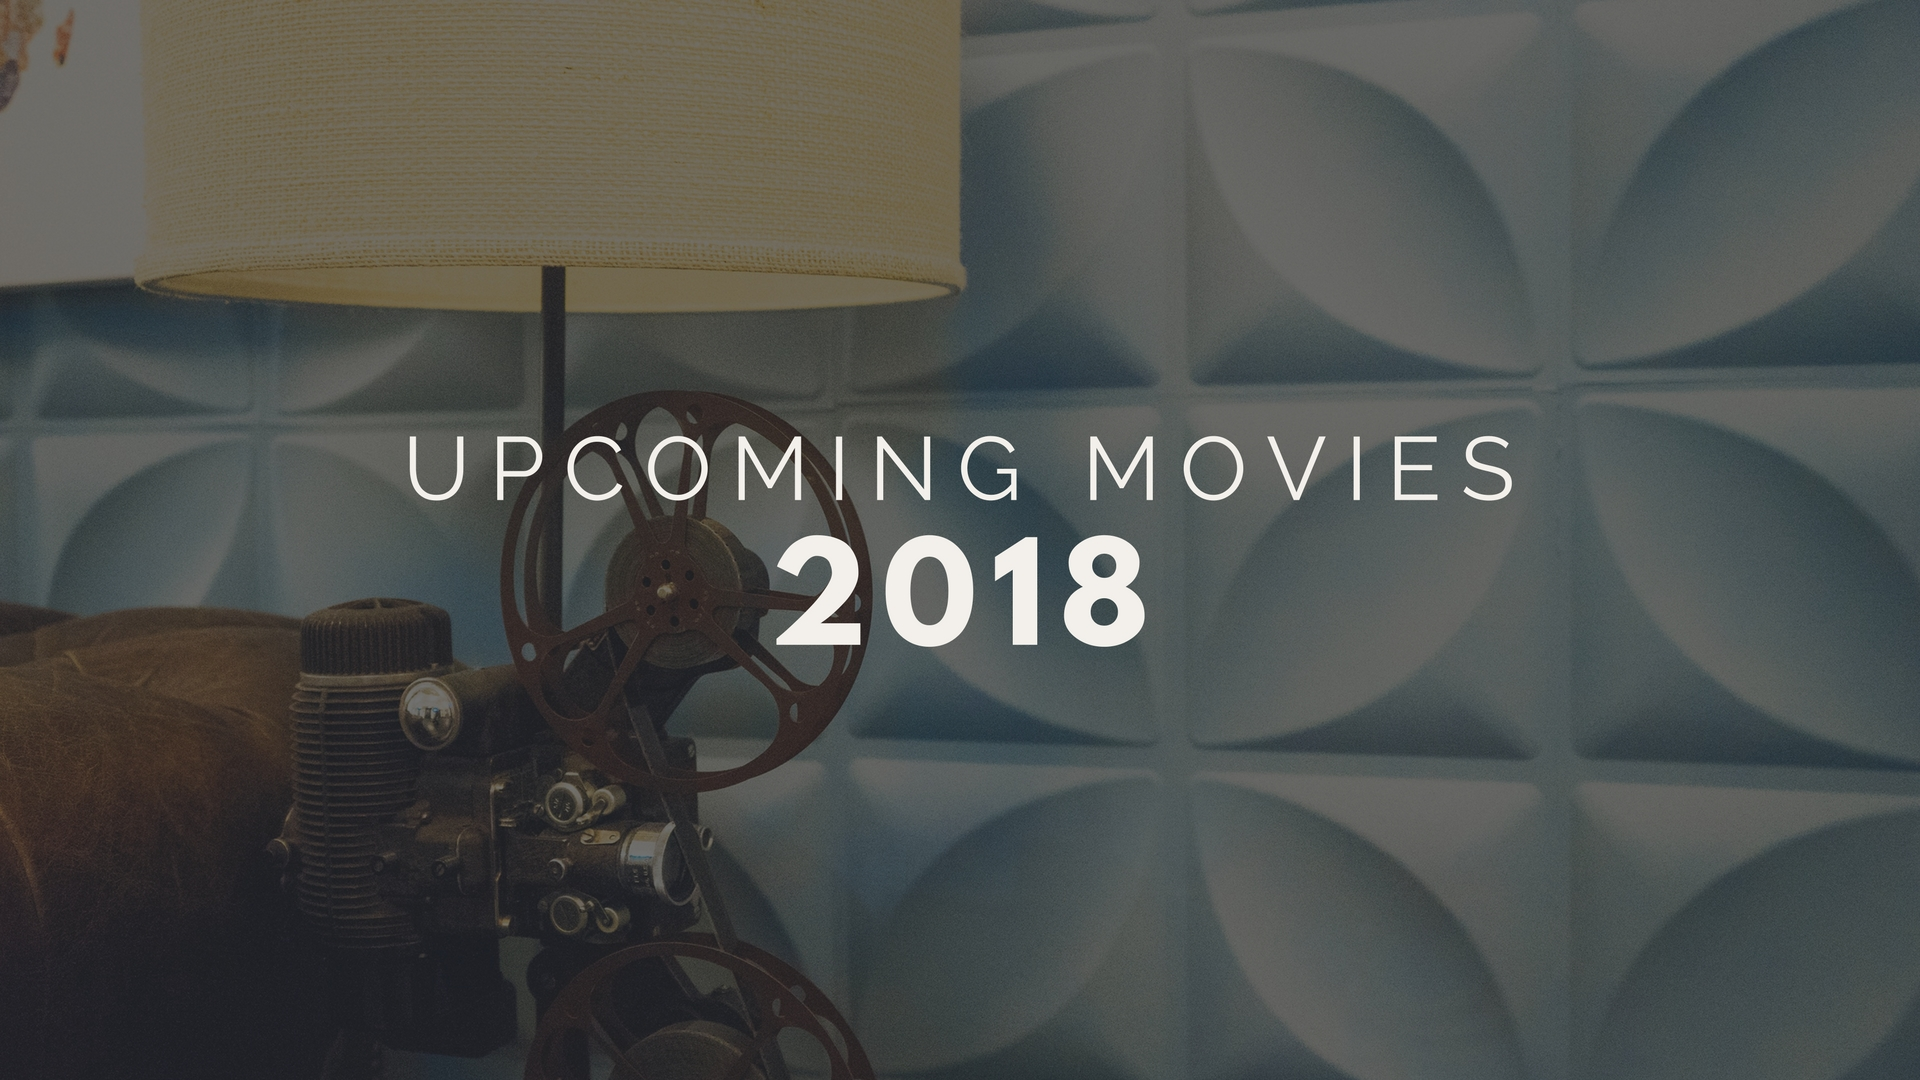 Upcoming movies 2018